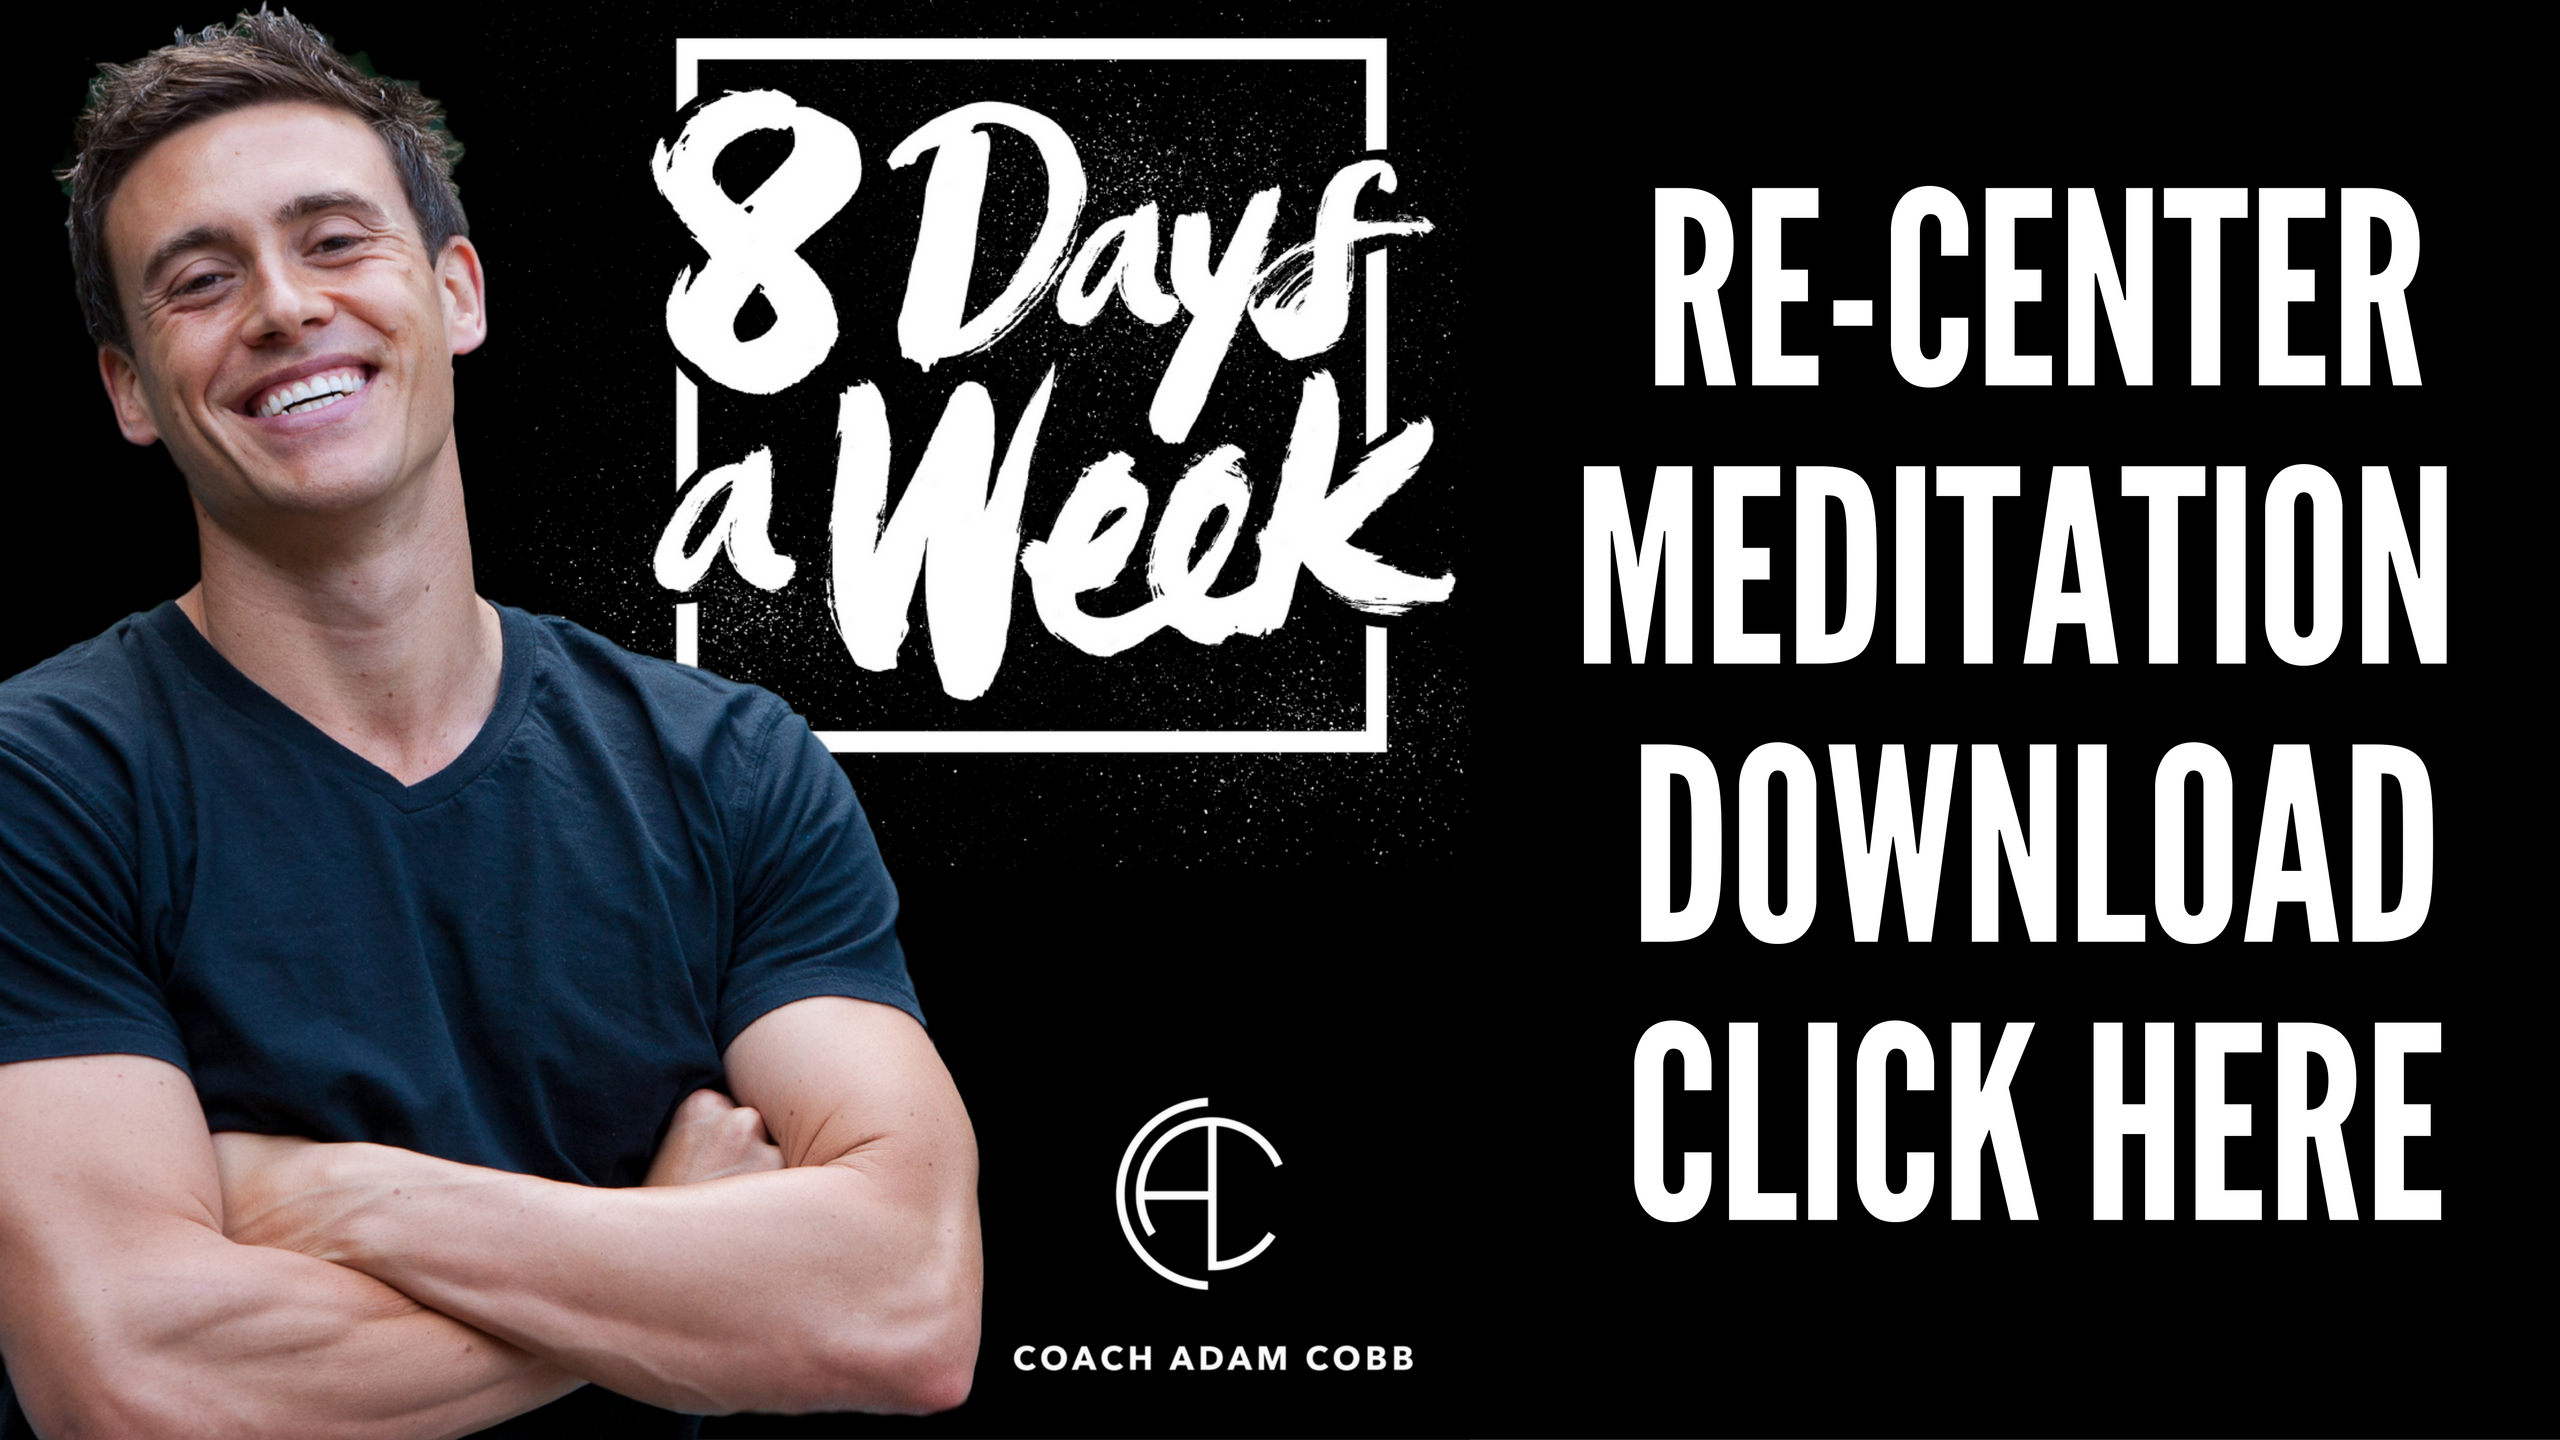 re-centremeditation-dowloadclick-here